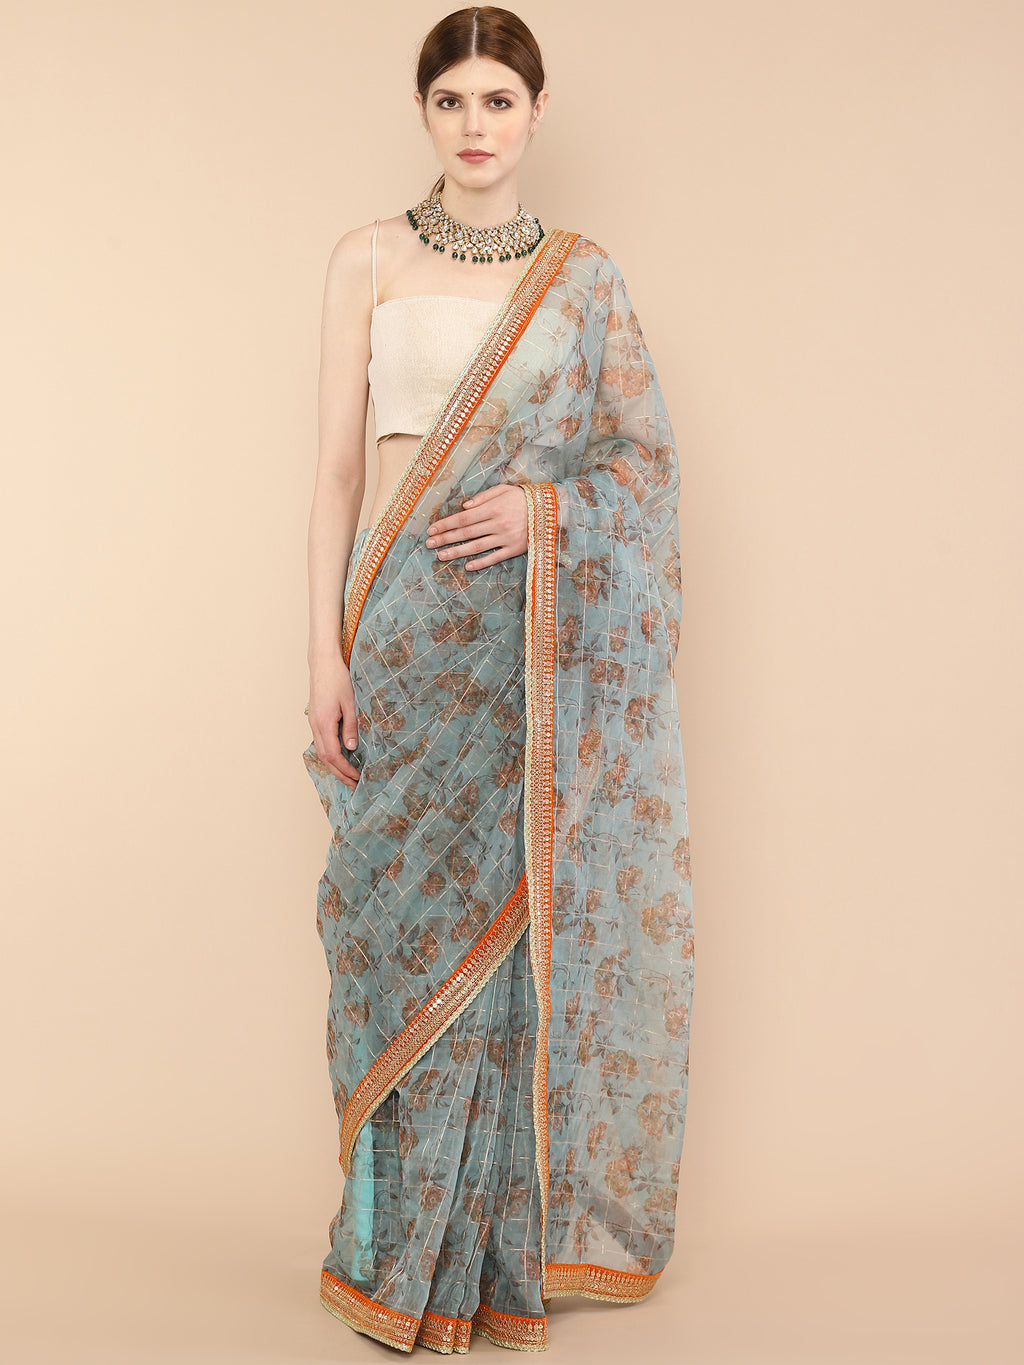 Bluish Grey Pure Organza Saree with Embroidered borders and floral prints